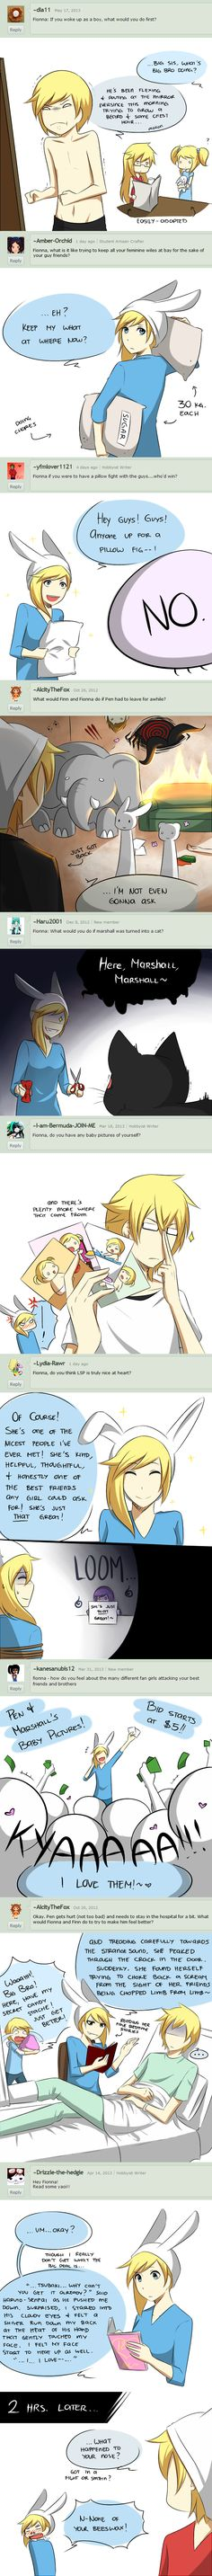 Ask Fionna - Dump 2 by Katkat-Tan on deviantART